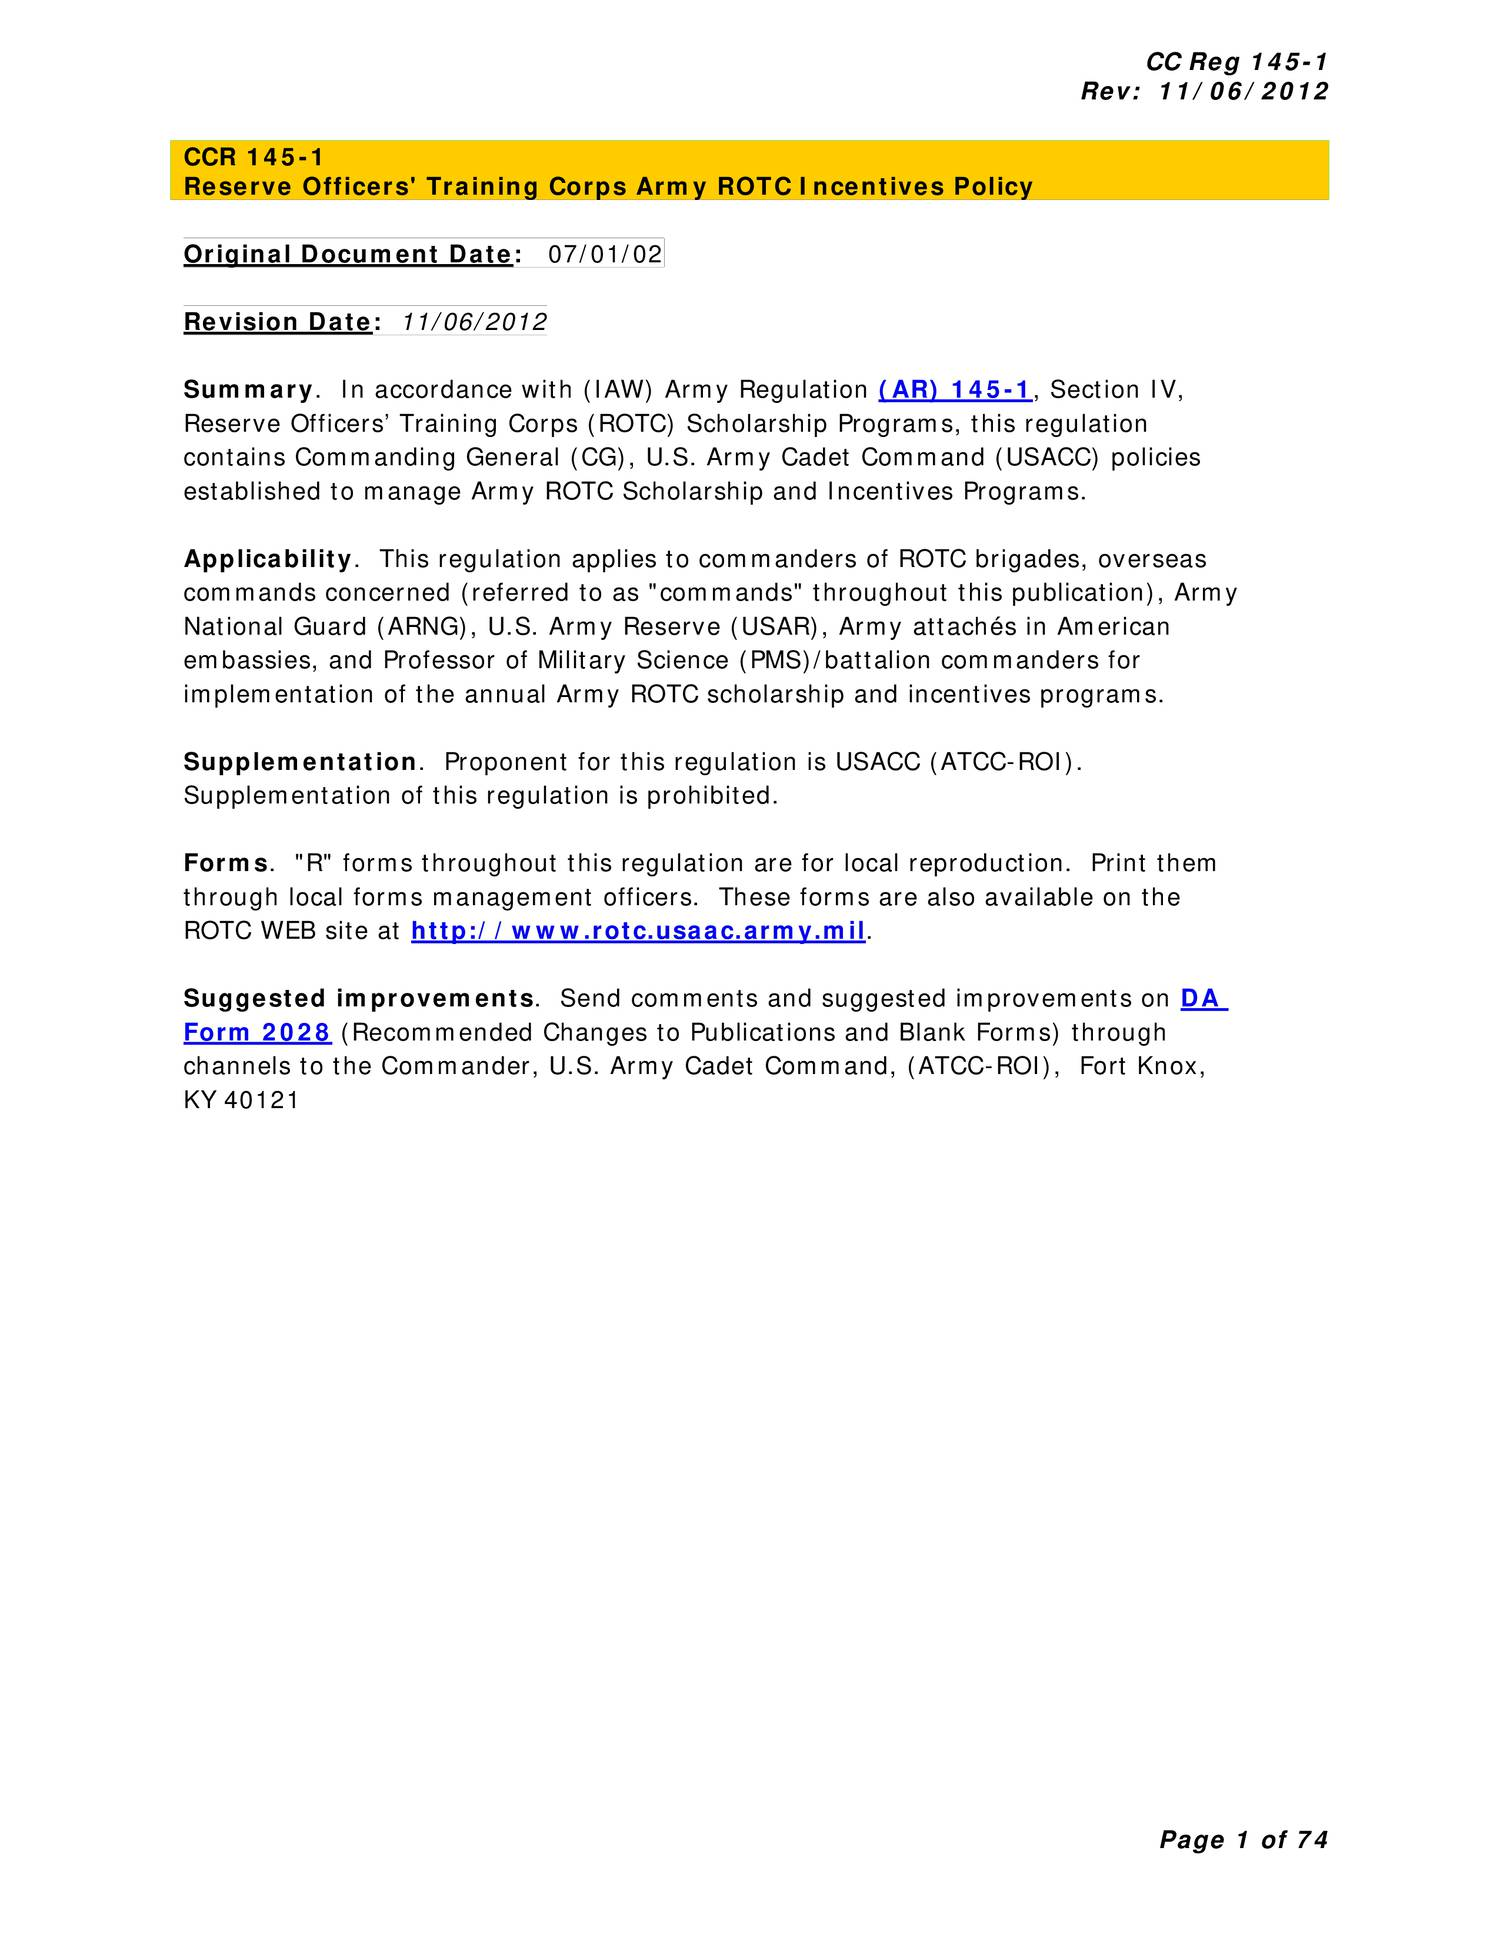 Reserve Officers Training Corps Army Rotc Incentives Policy Cc